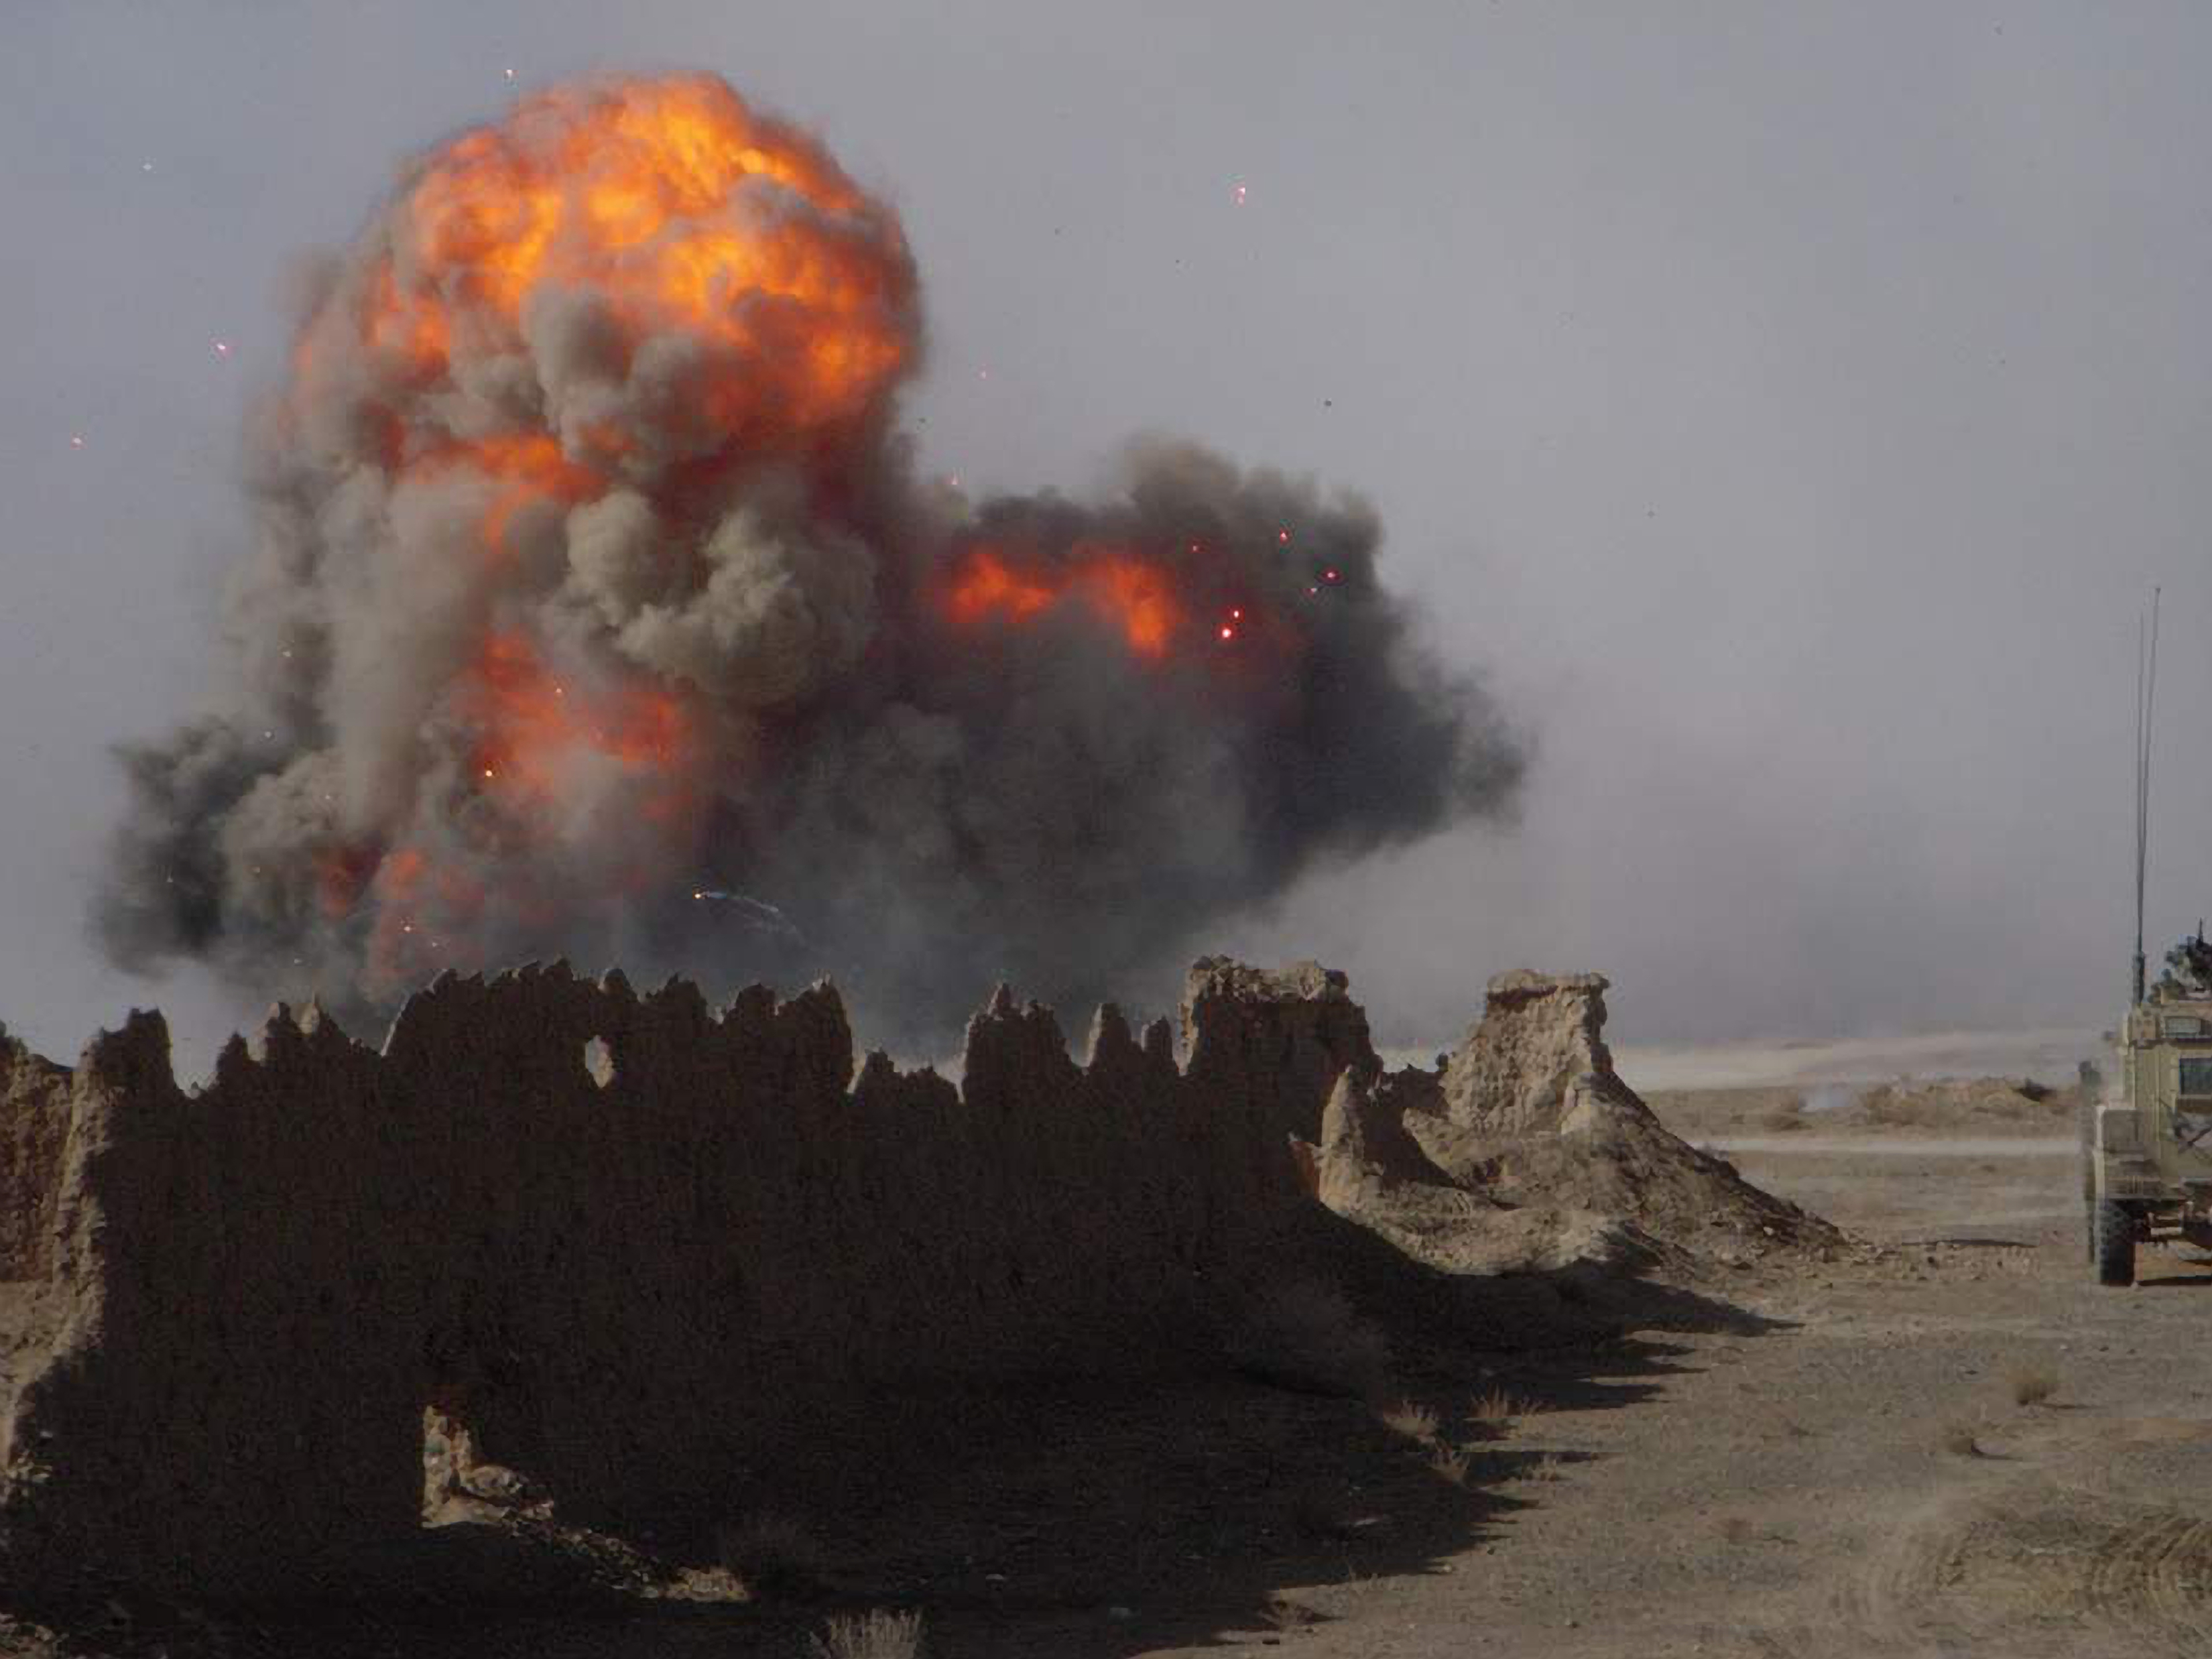 Sgt Gravelle Afghanistan CSS story pic 1 copy